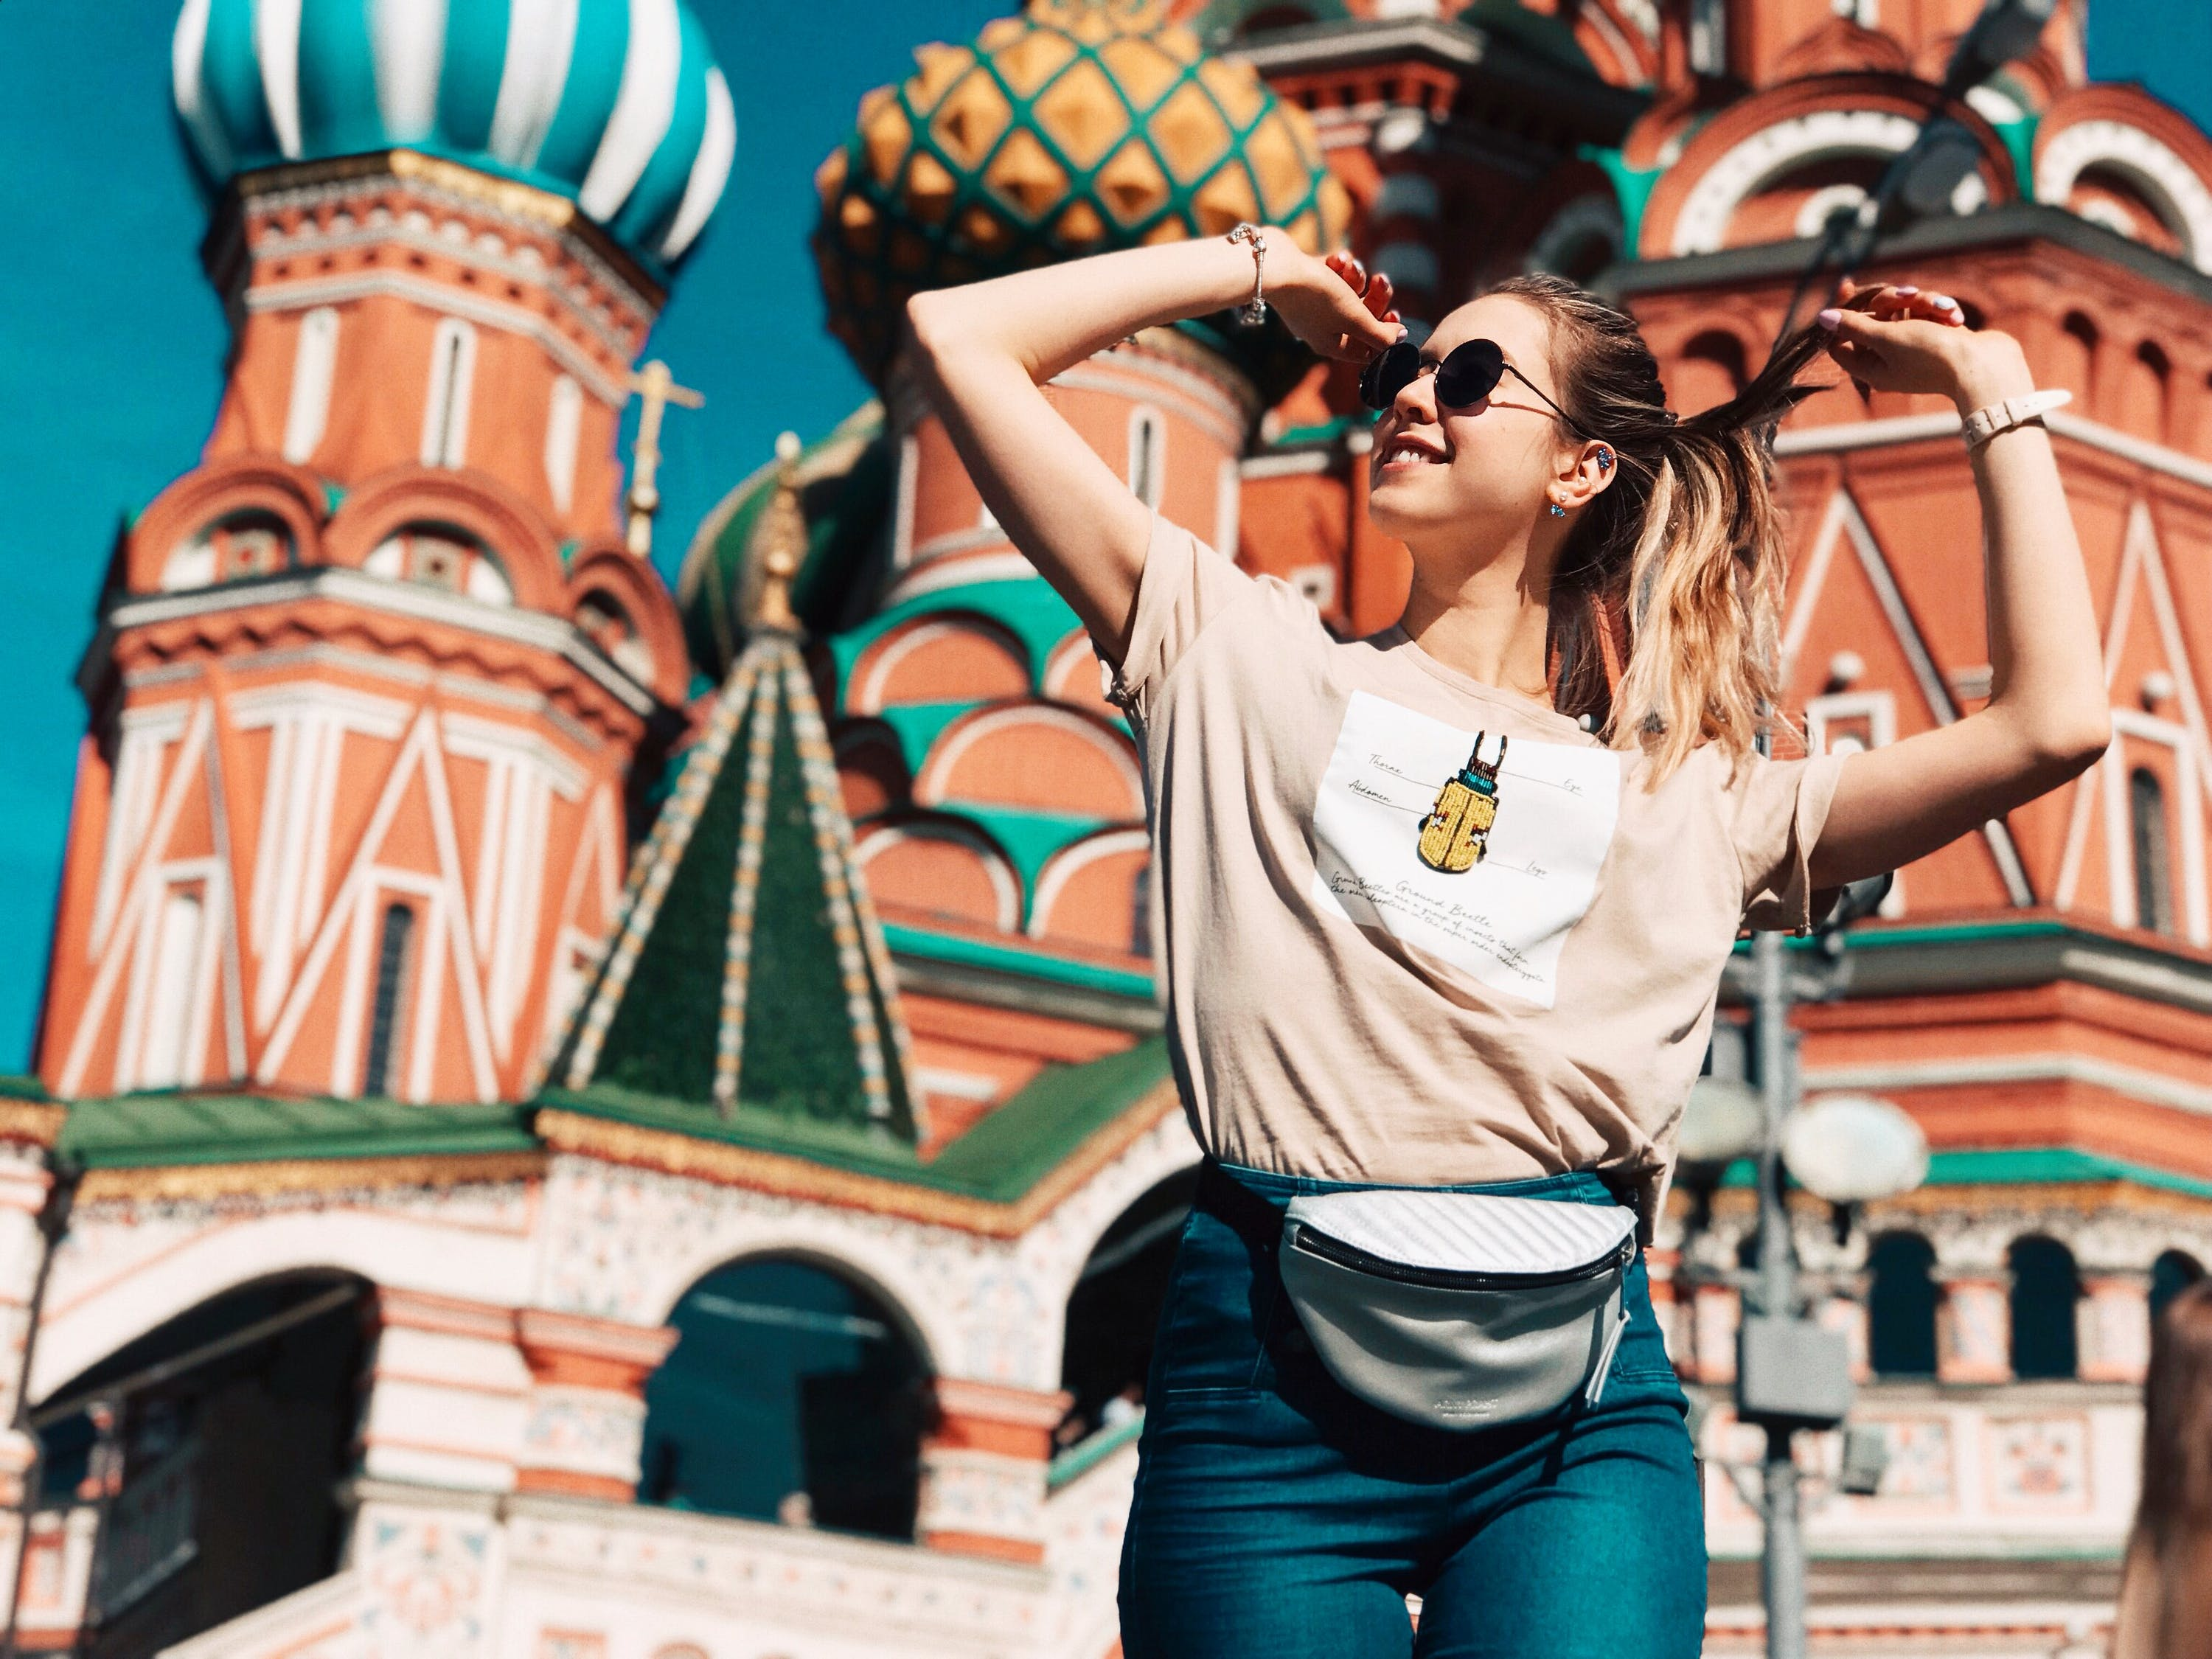 Photo of Woman Dancing With Saint Basil's Cathedral in Moscow, Russia in the Background - Russia Travel Guide